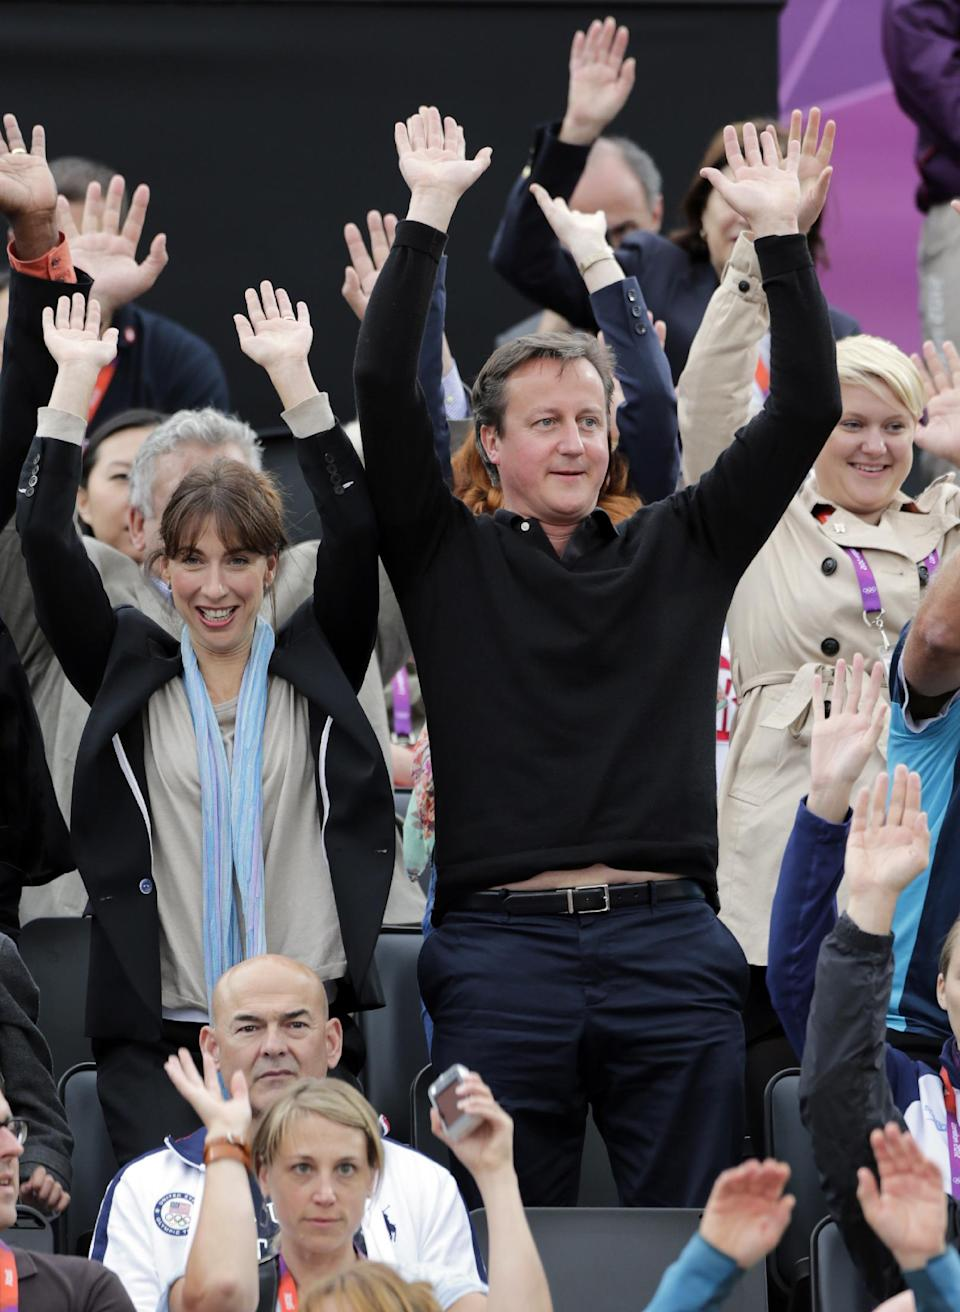 British Prime Minister David Cameron, right, participates in the wave cheer during a women's semi-final beach volleyball match between China and the United States at the 2012 Summer Olympics, Tuesday, Aug. 7, 2012, in London. (AP Photo/Dave Martin)